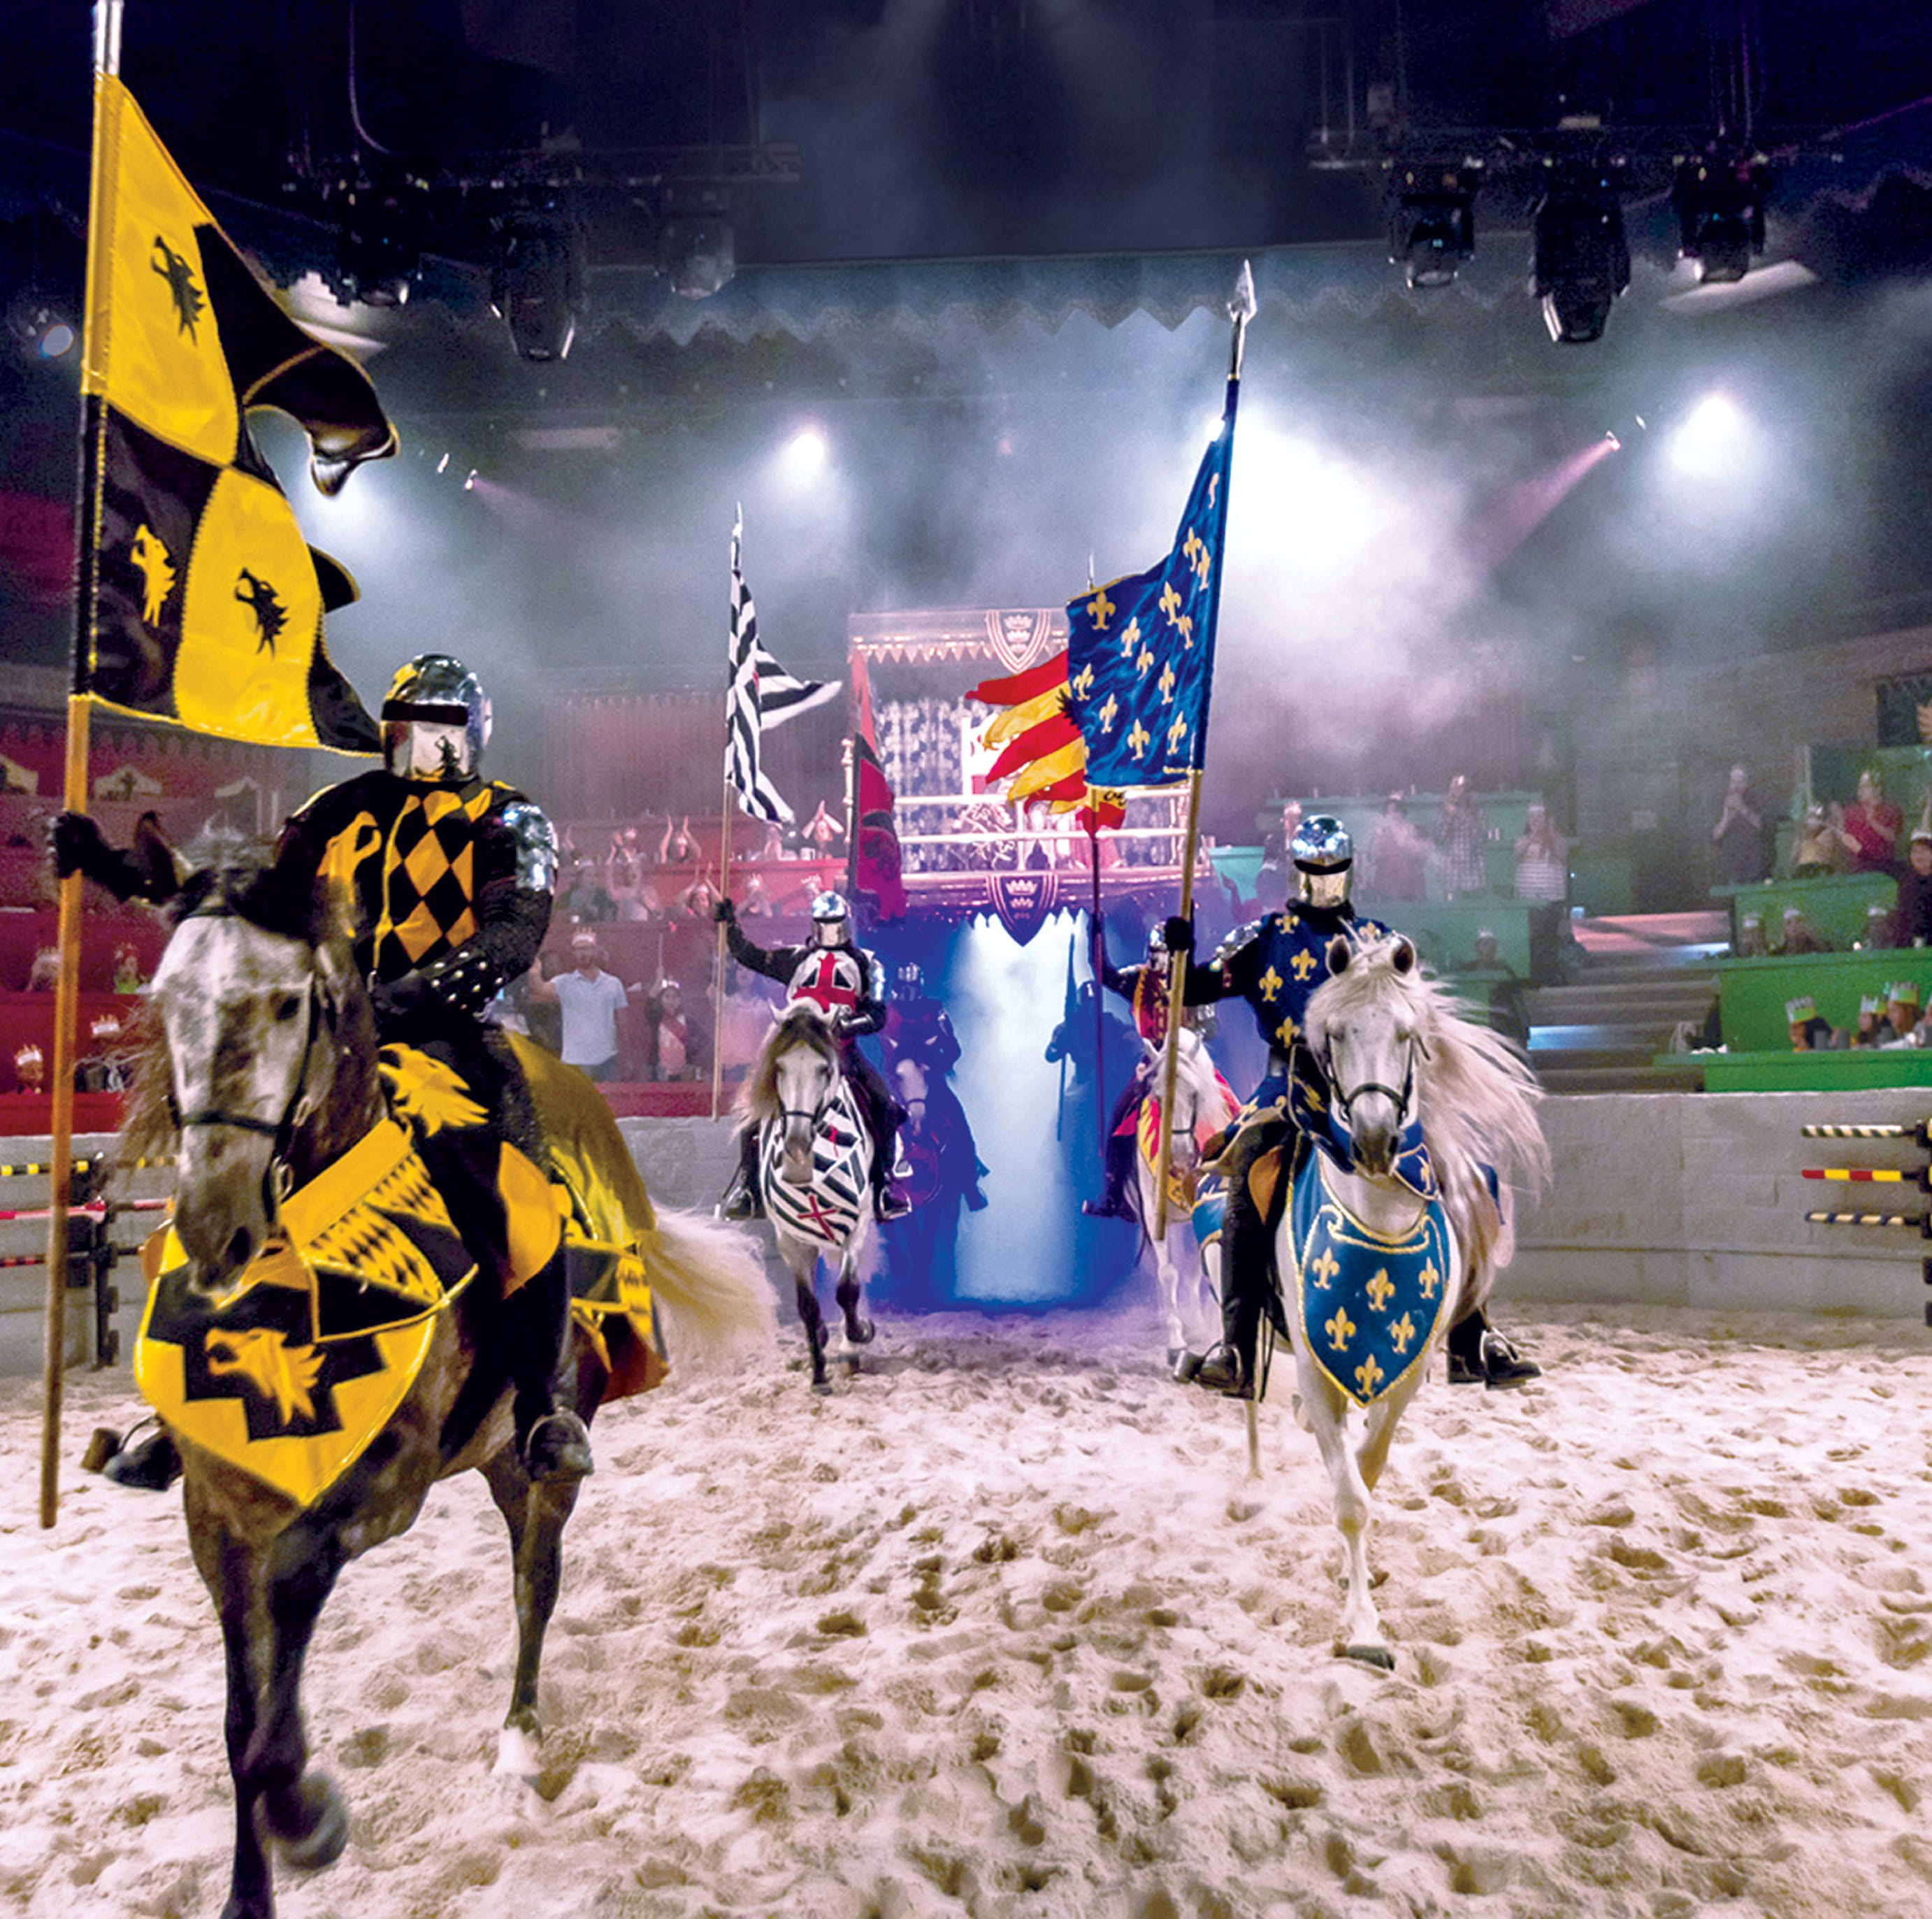 Medieval Times is coming to Arizona this summer. Here's what we know so far